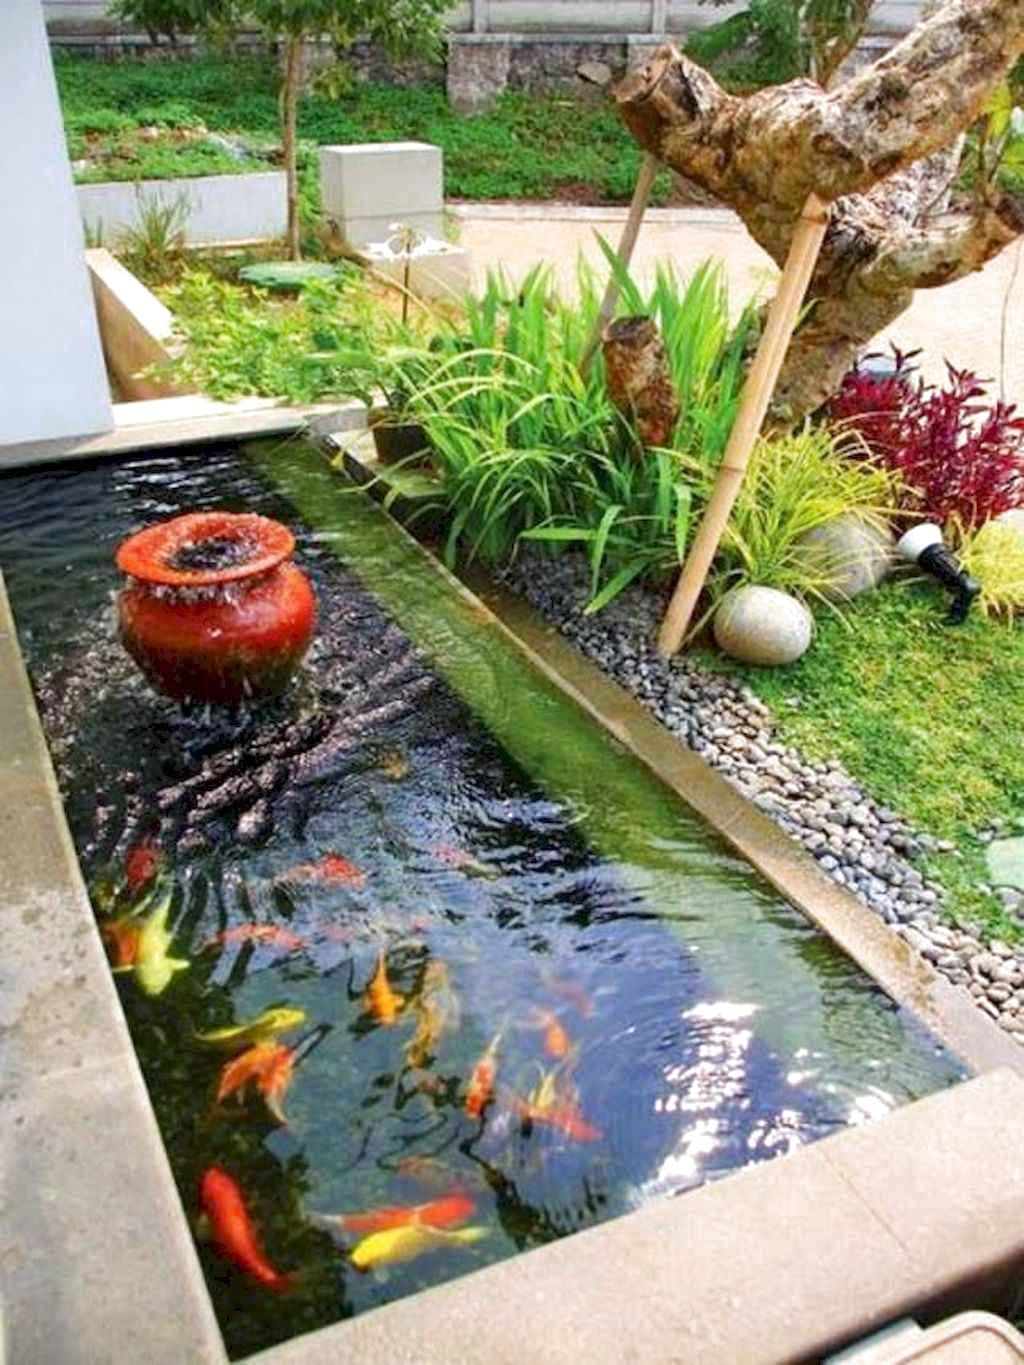 47 Amazing Backyard Ponds And Water Garden Landscaping Ideas The Expert Beautiful Ideas Fish Ponds Backyard Ponds Backyard Small Backyard Ponds